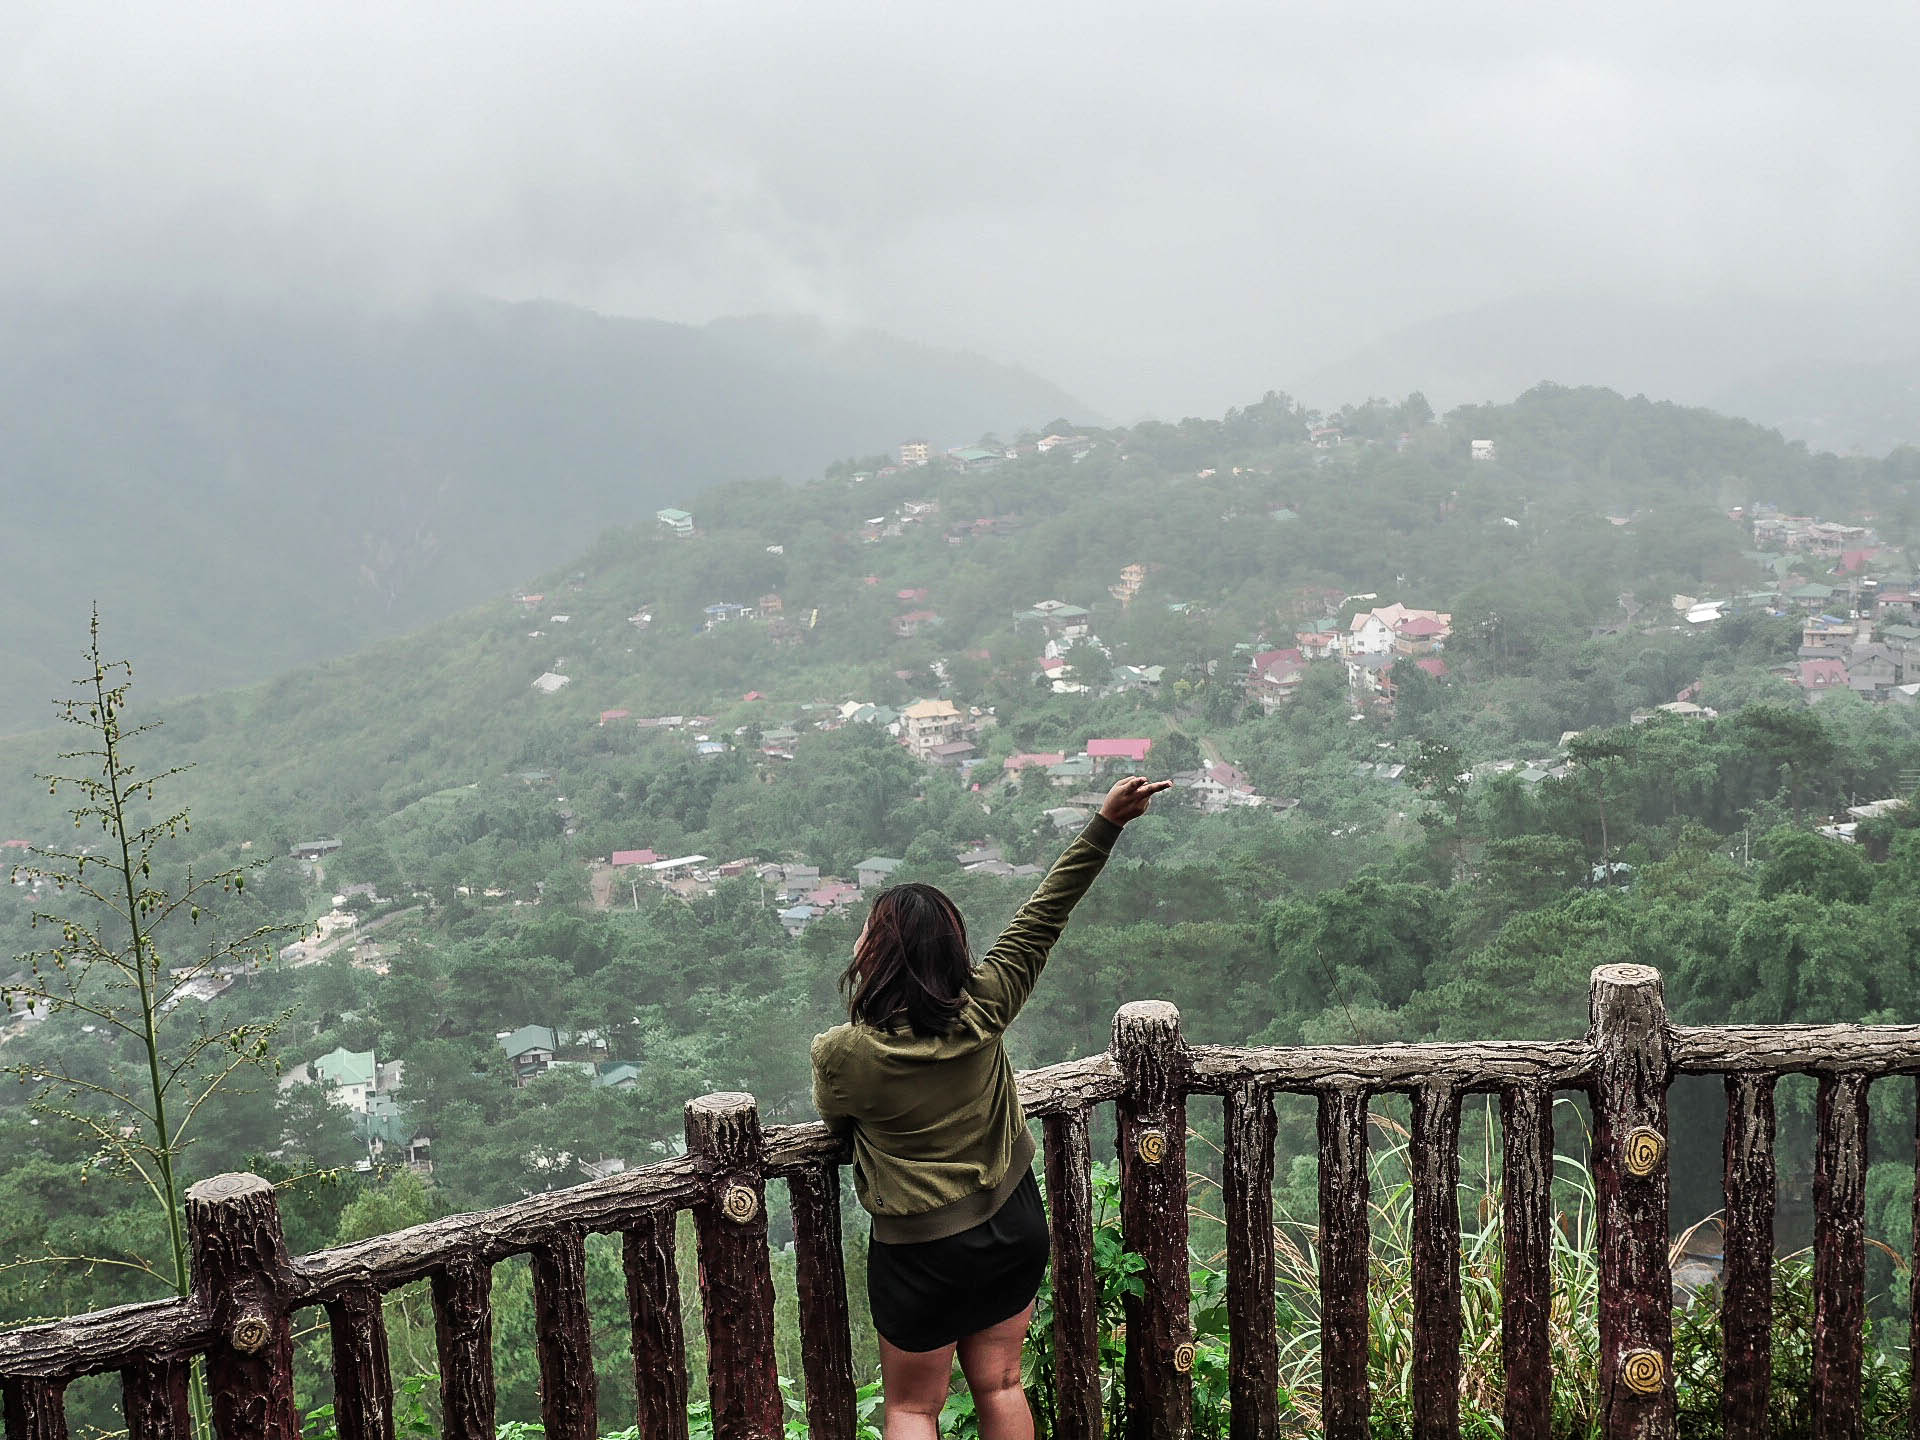 filipino girl waving at Mines View Park in baguio city philippines